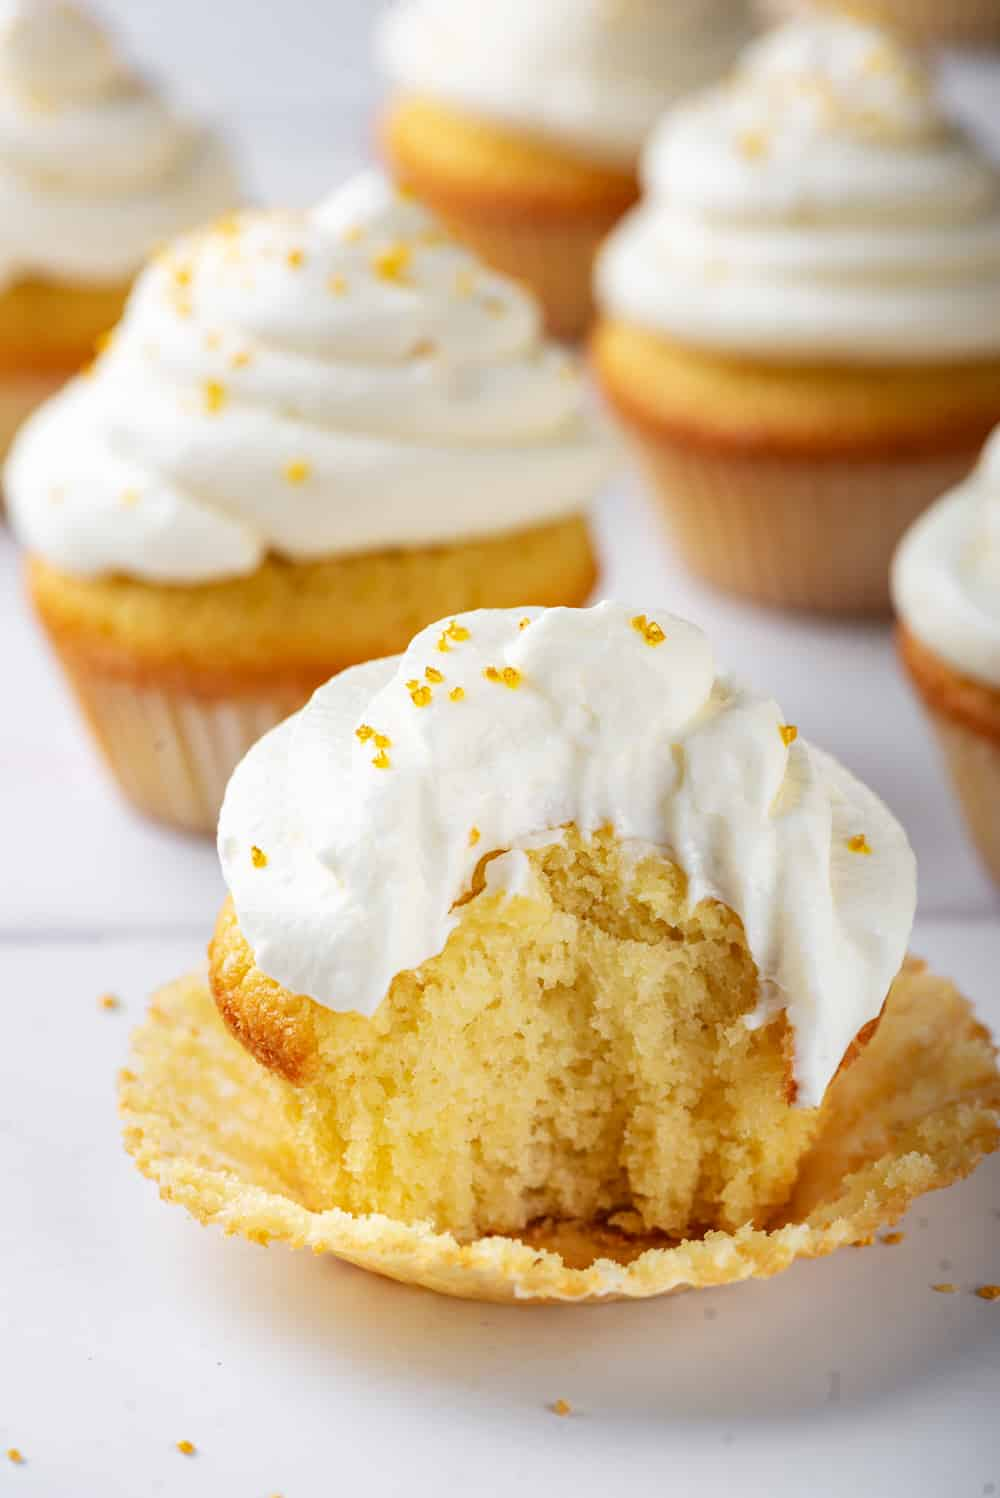 A keto cream cheese frosted vanilla cupcake with a bite taken out of the front sitting in a cupcake wrapper. There are a couple of keto cupcakes behind it and they are all on a white counter.